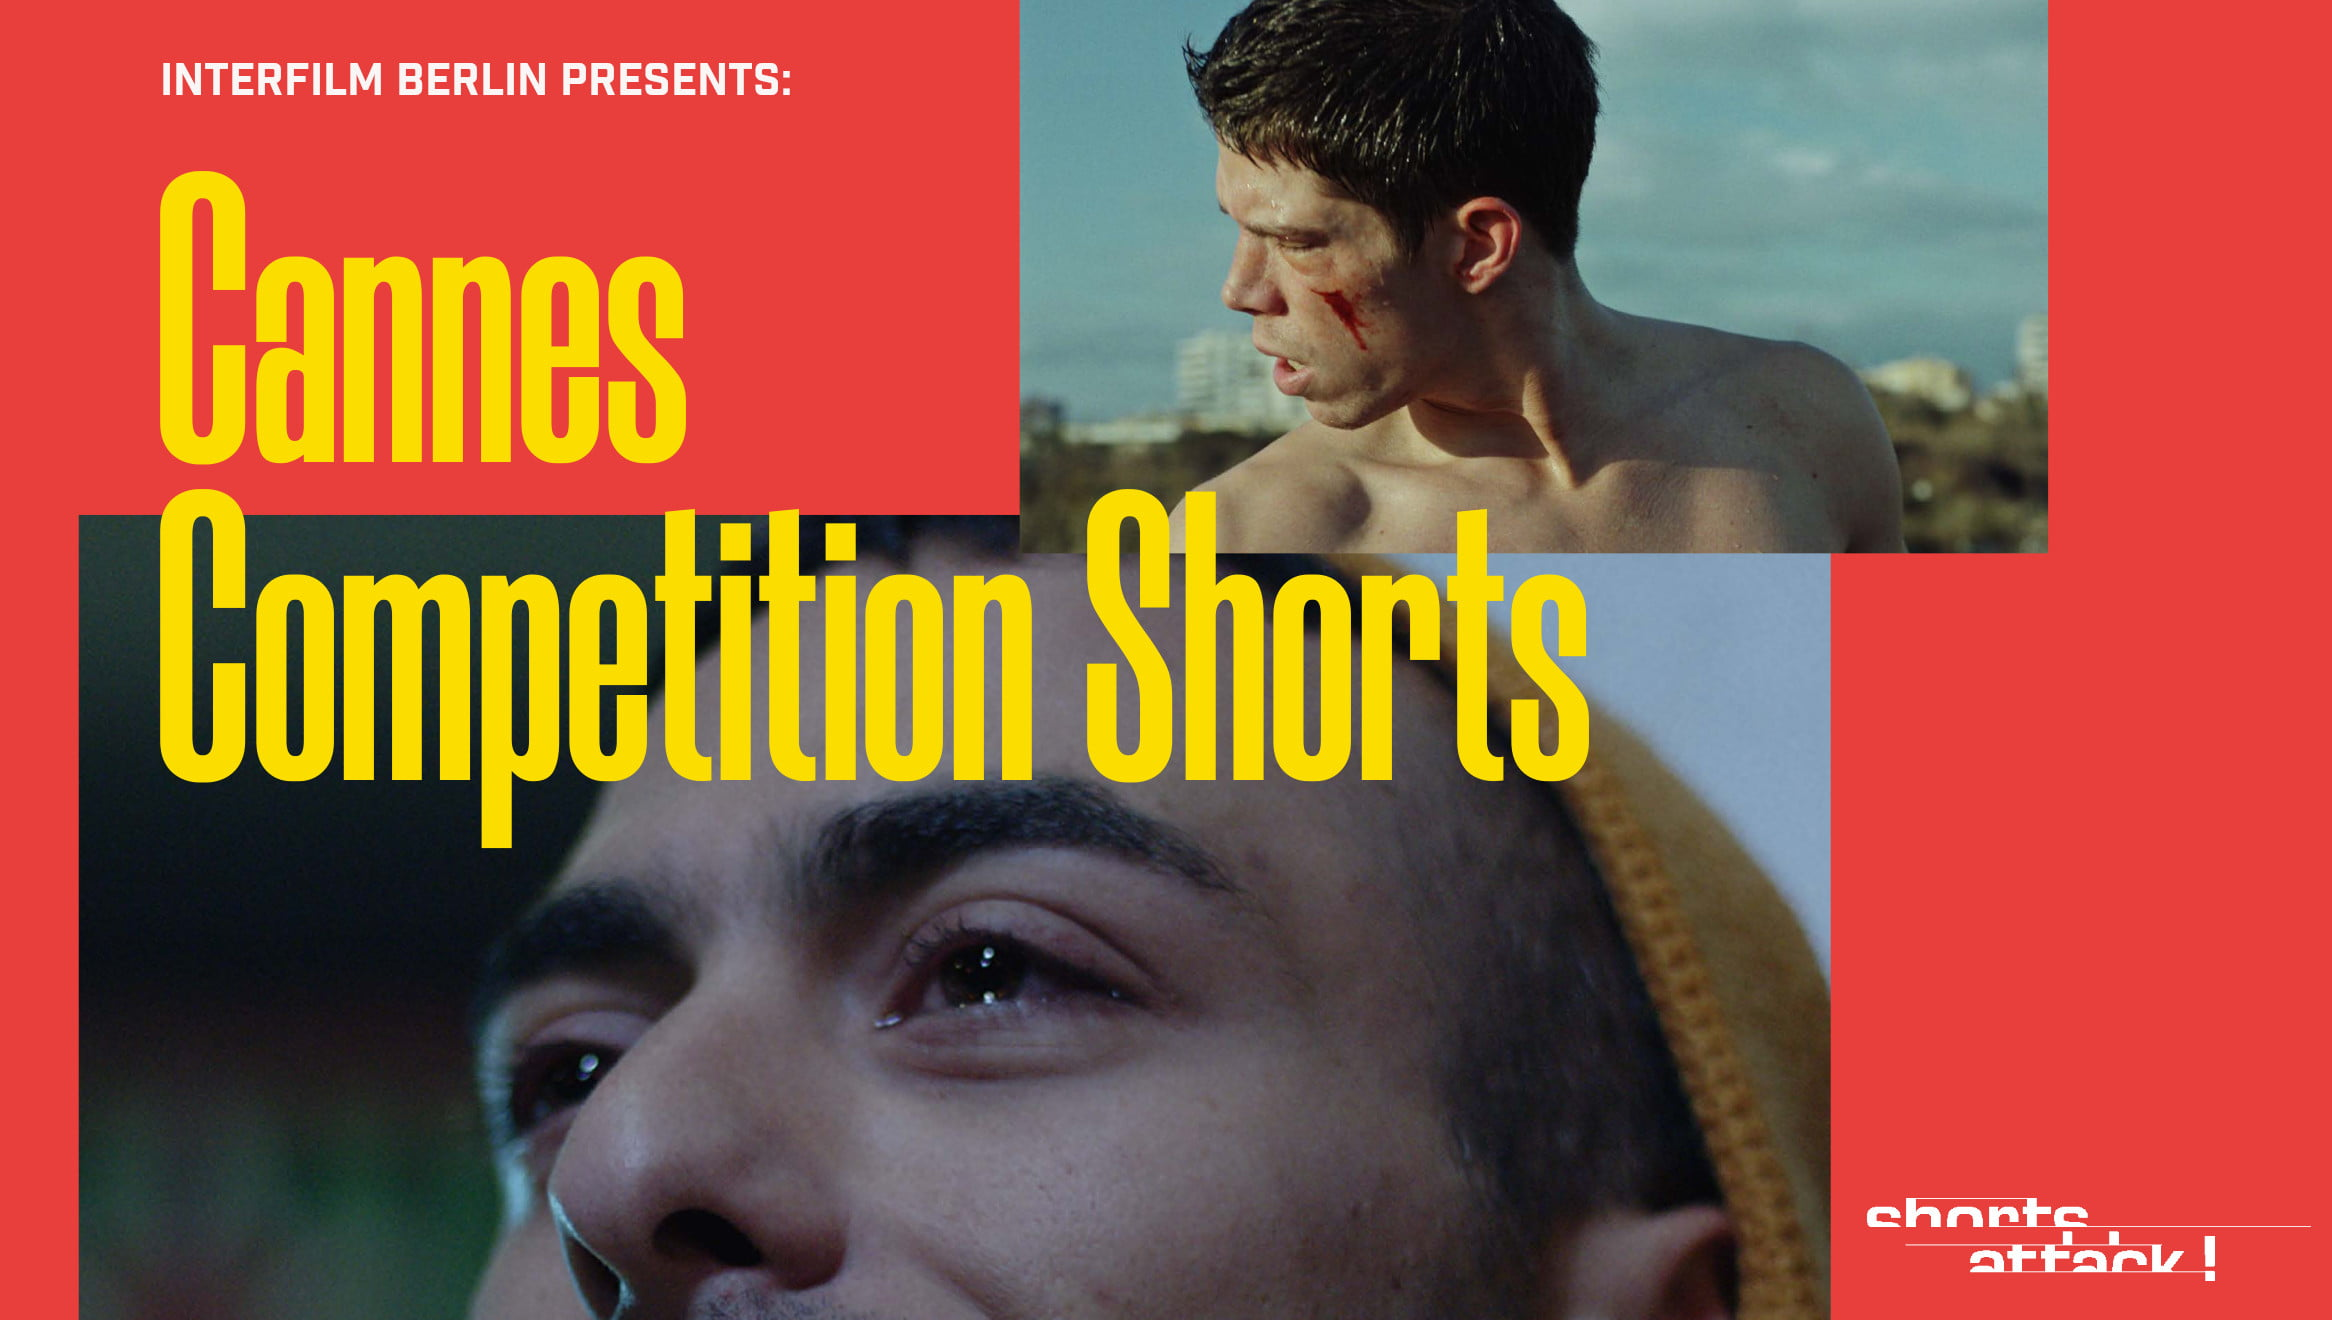 TUESDAY 22.09.20 – 20:00 I CANNES COMPETITION SHORTS (ENGLISH SUBTITLES)